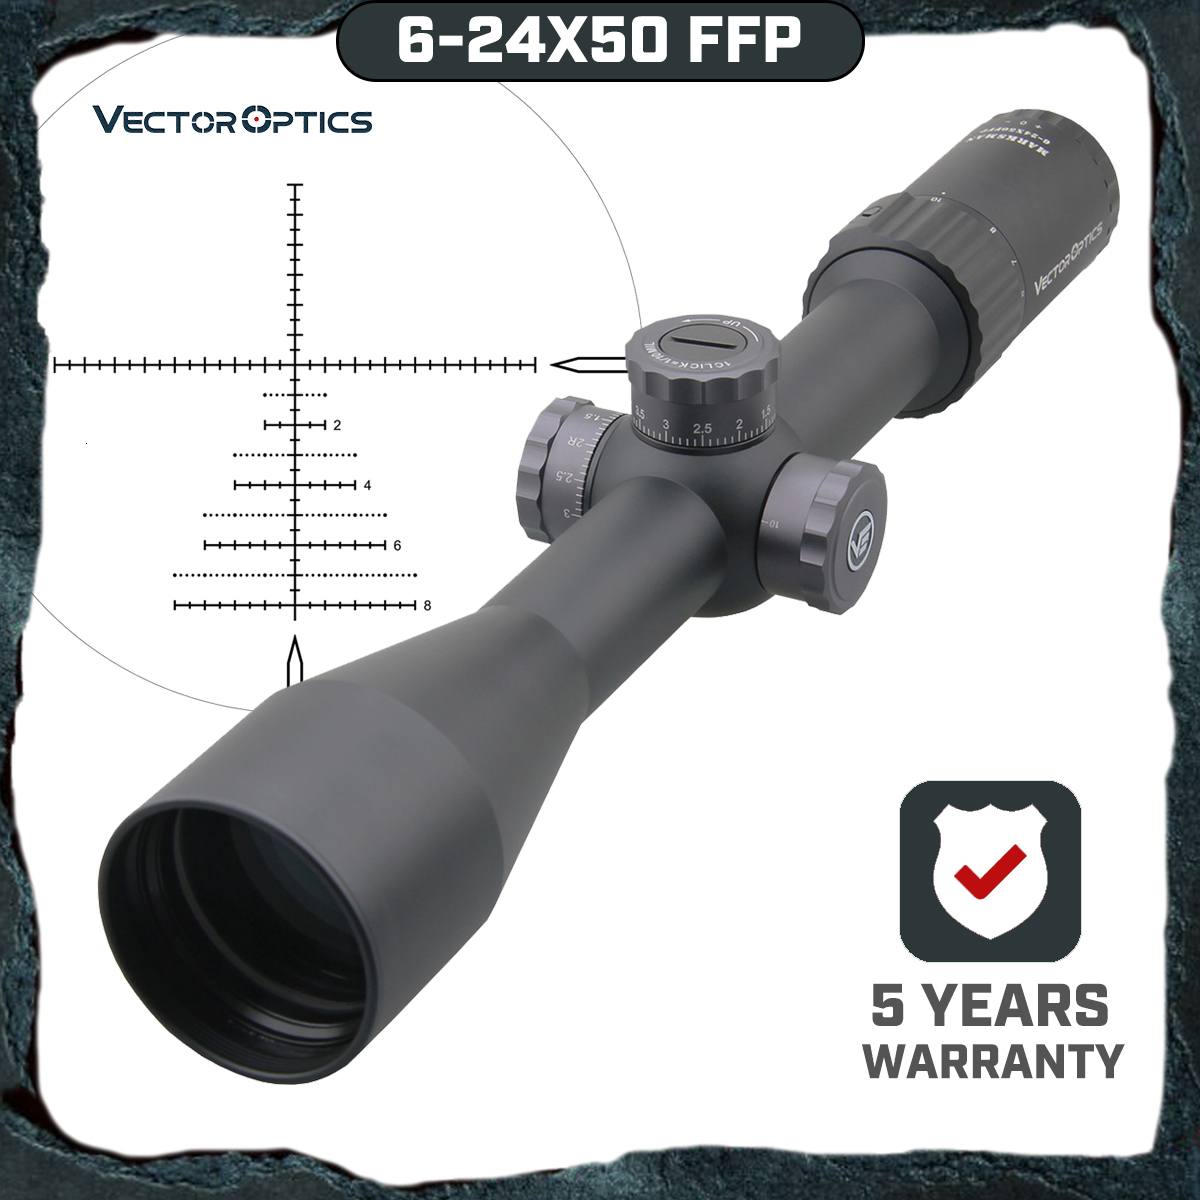 Vector Optics Marksman 6-24x50 FFP Tactical Riflescope 1/10 MIL Min Focus 10 Yds First Focal Plane Hunting Rifle Scope .338 Lap